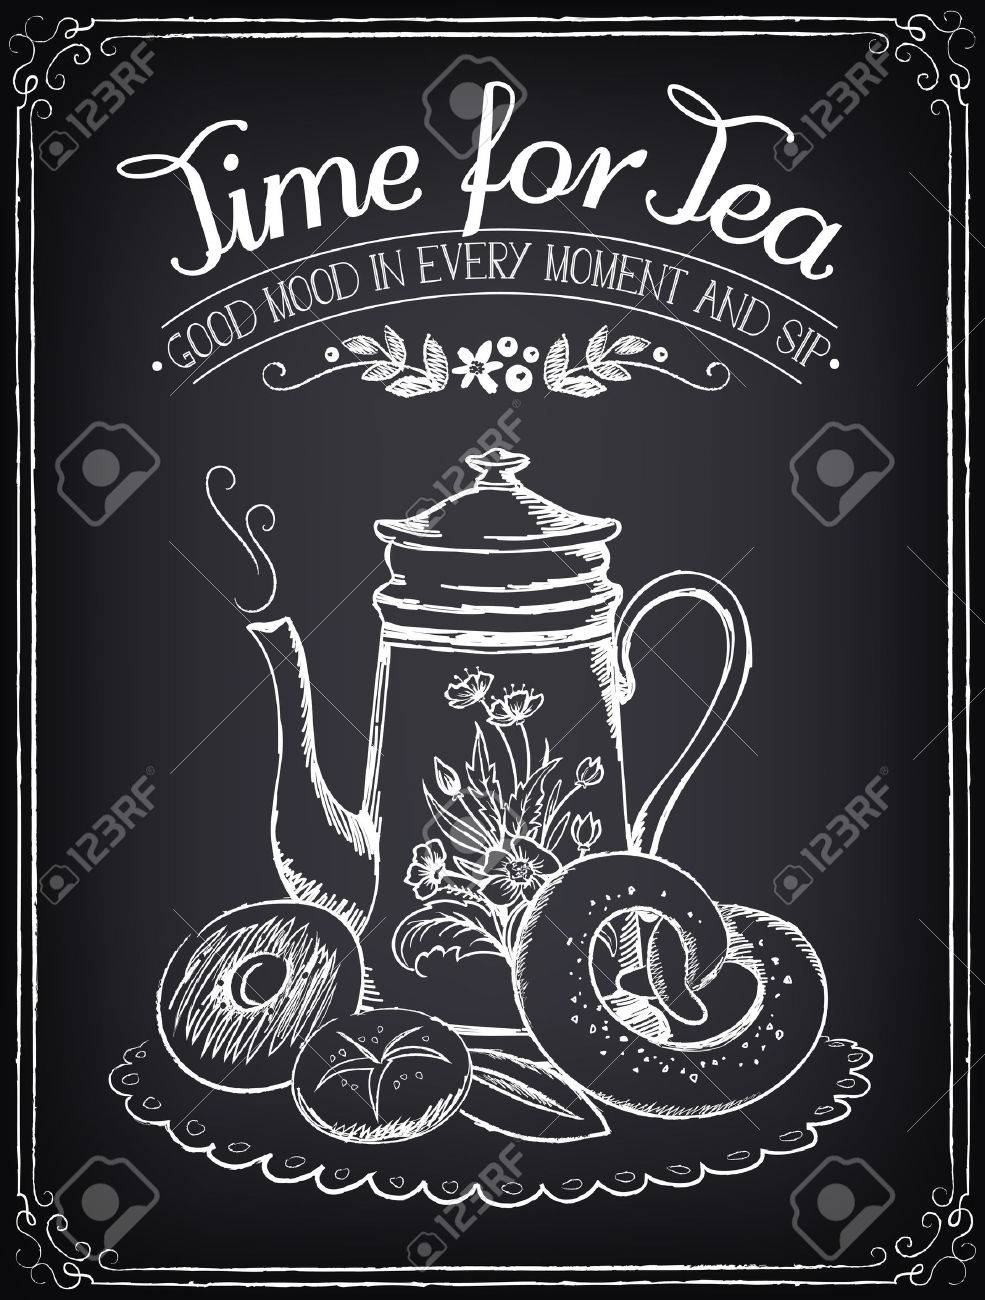 Illustration with the words Time for tea and teapot, bakery. Freehand drawing with imitation of chalk sketch - 45985685